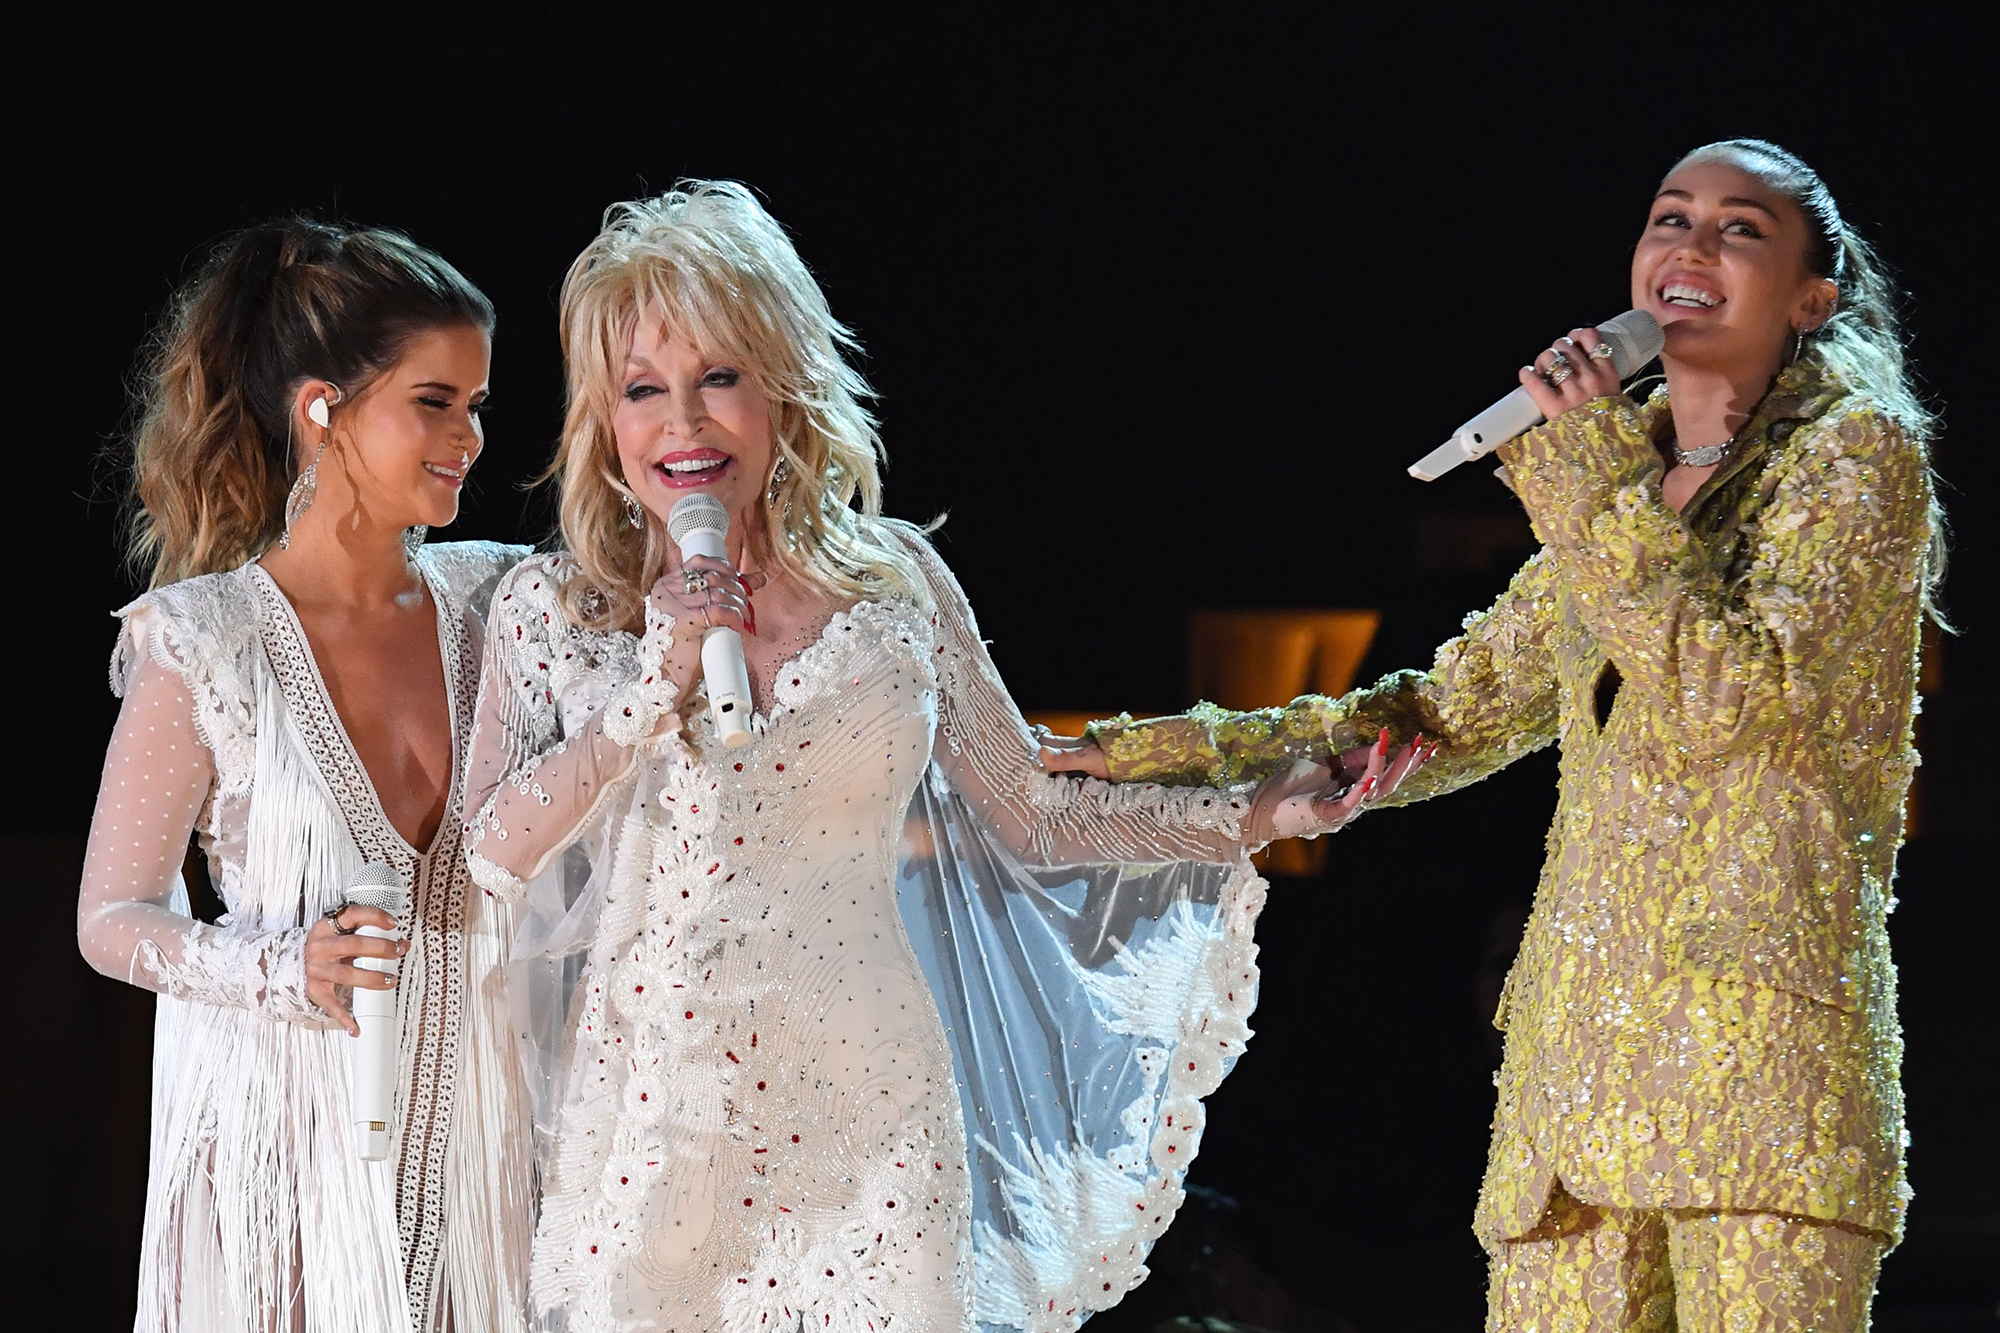 Miley Cyrus, Kacey Musgraves & More Bring Audience to Their Feet with Dolly Parton Grammys Tribute dolly-parton-43